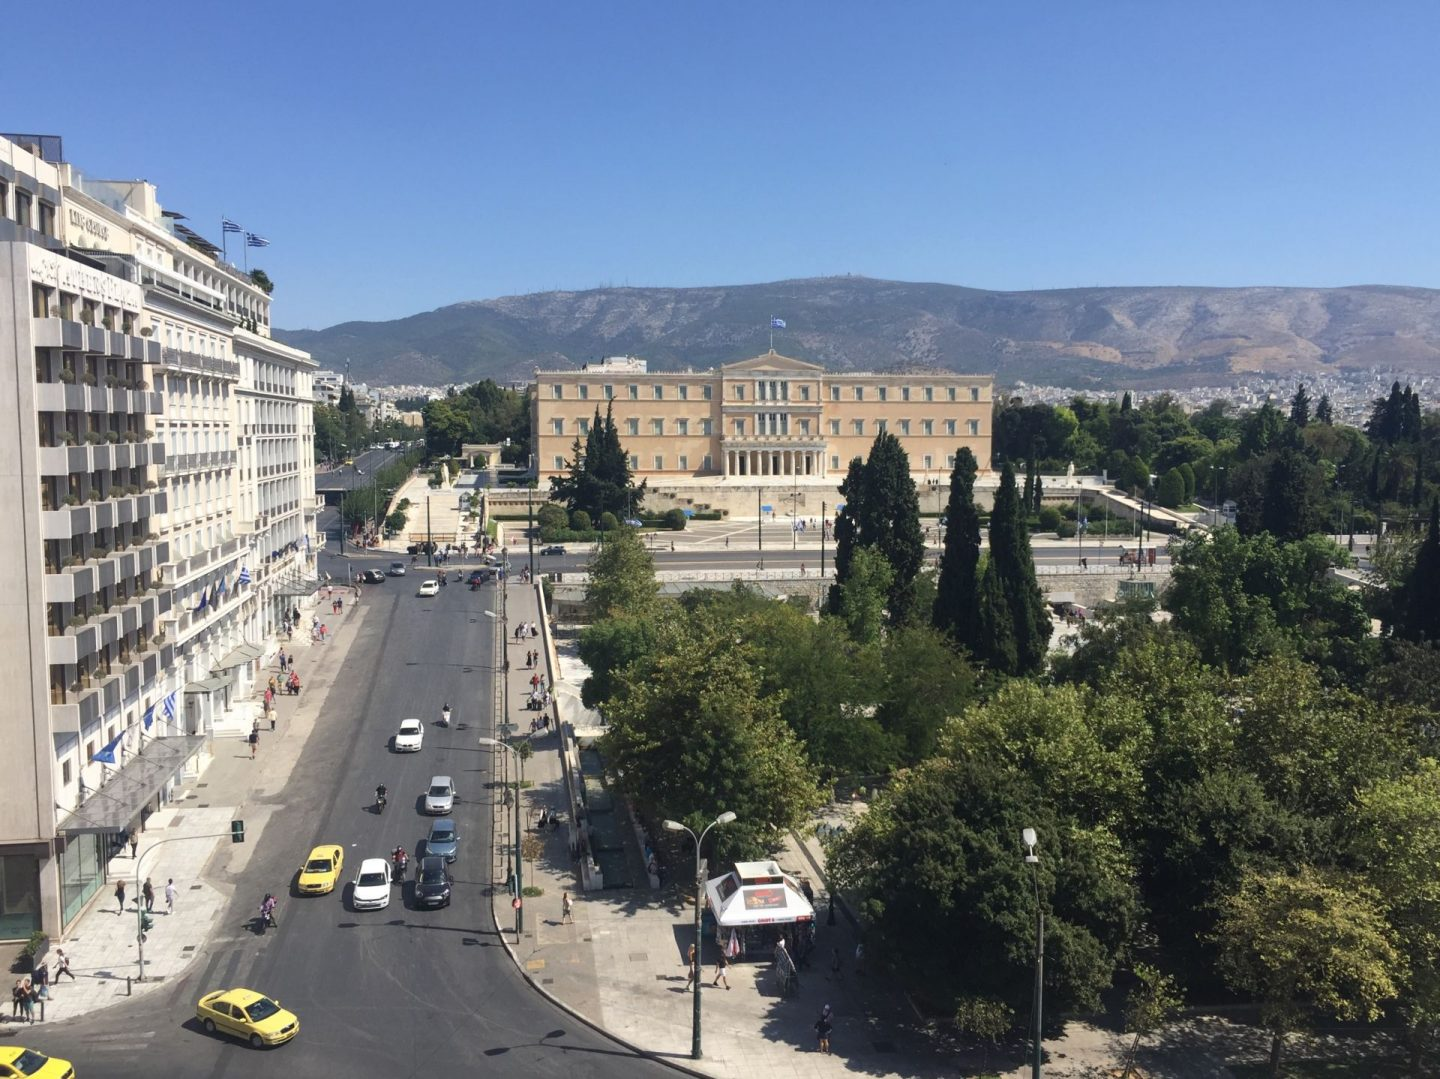 views over Syntagma Square in Athens